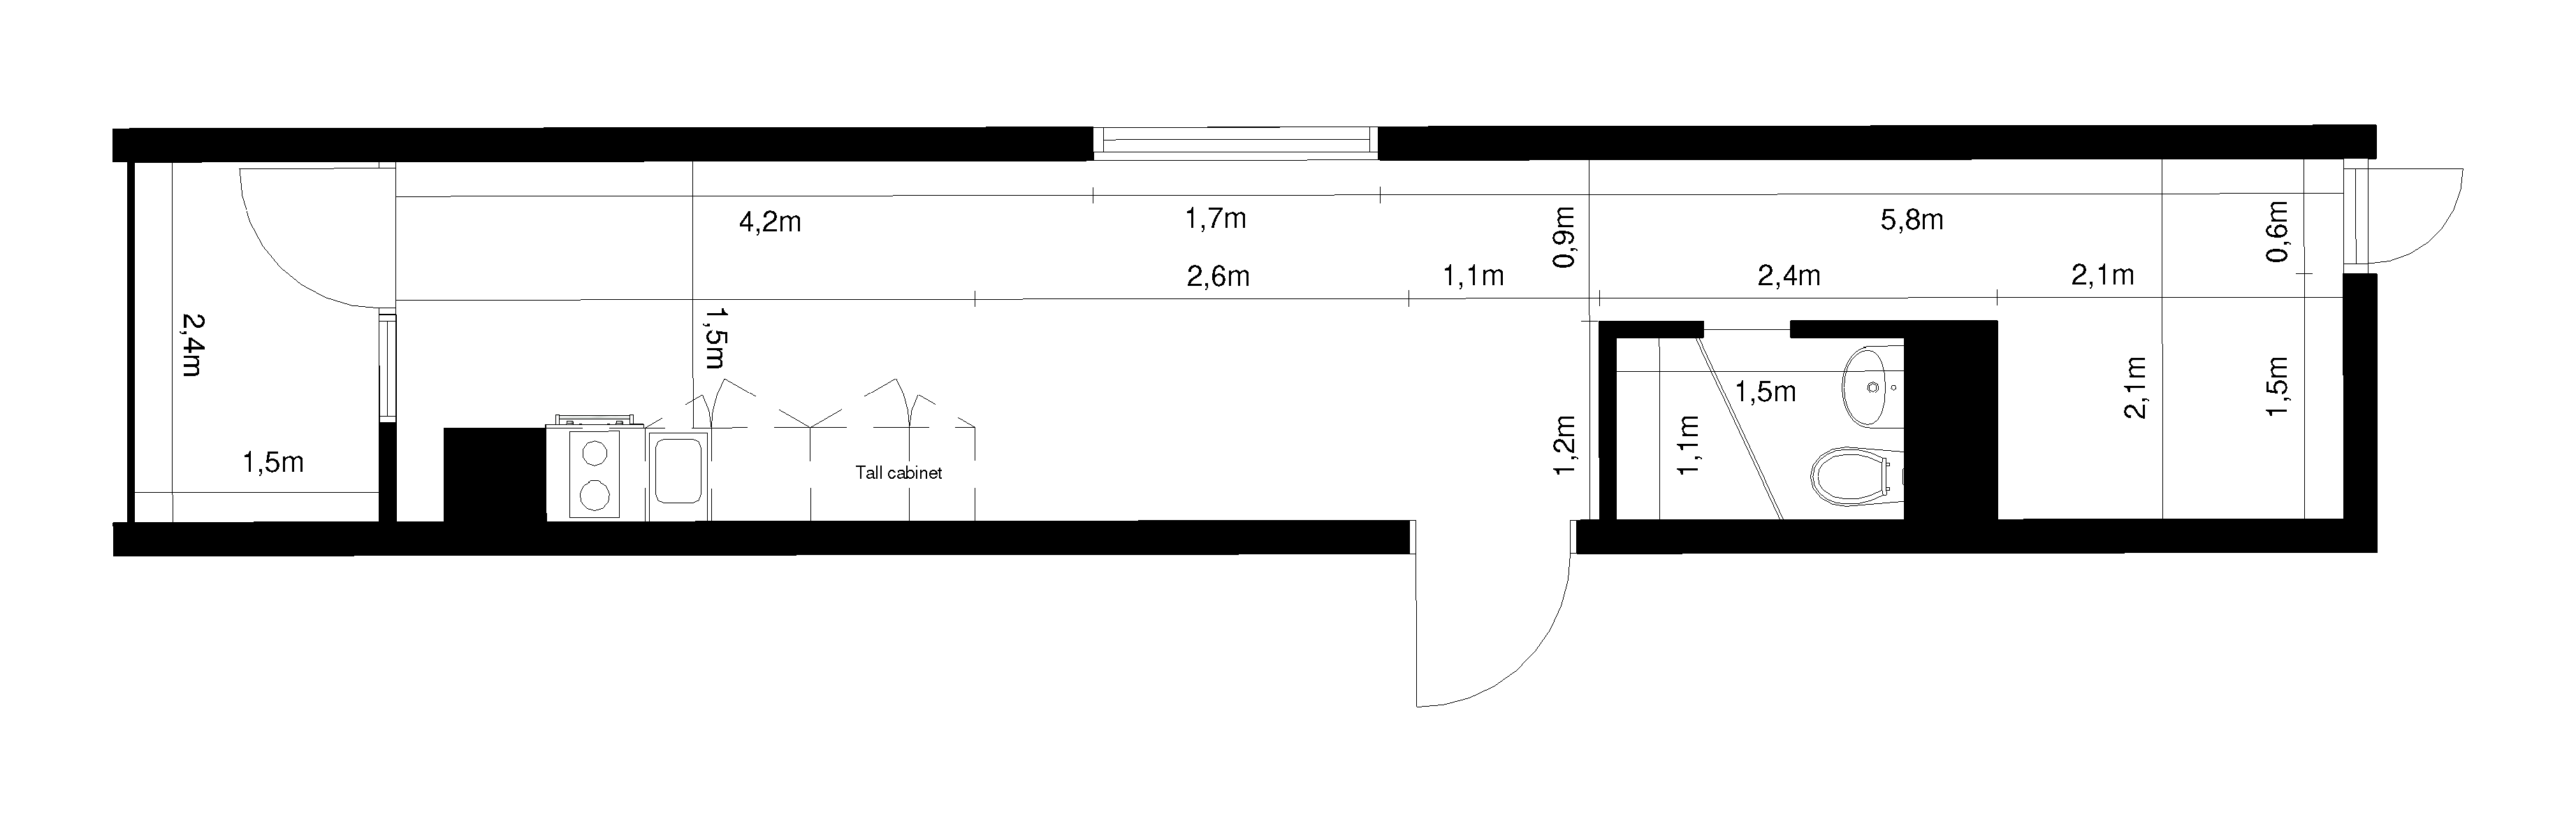 UR2 Floor Plan SC #3